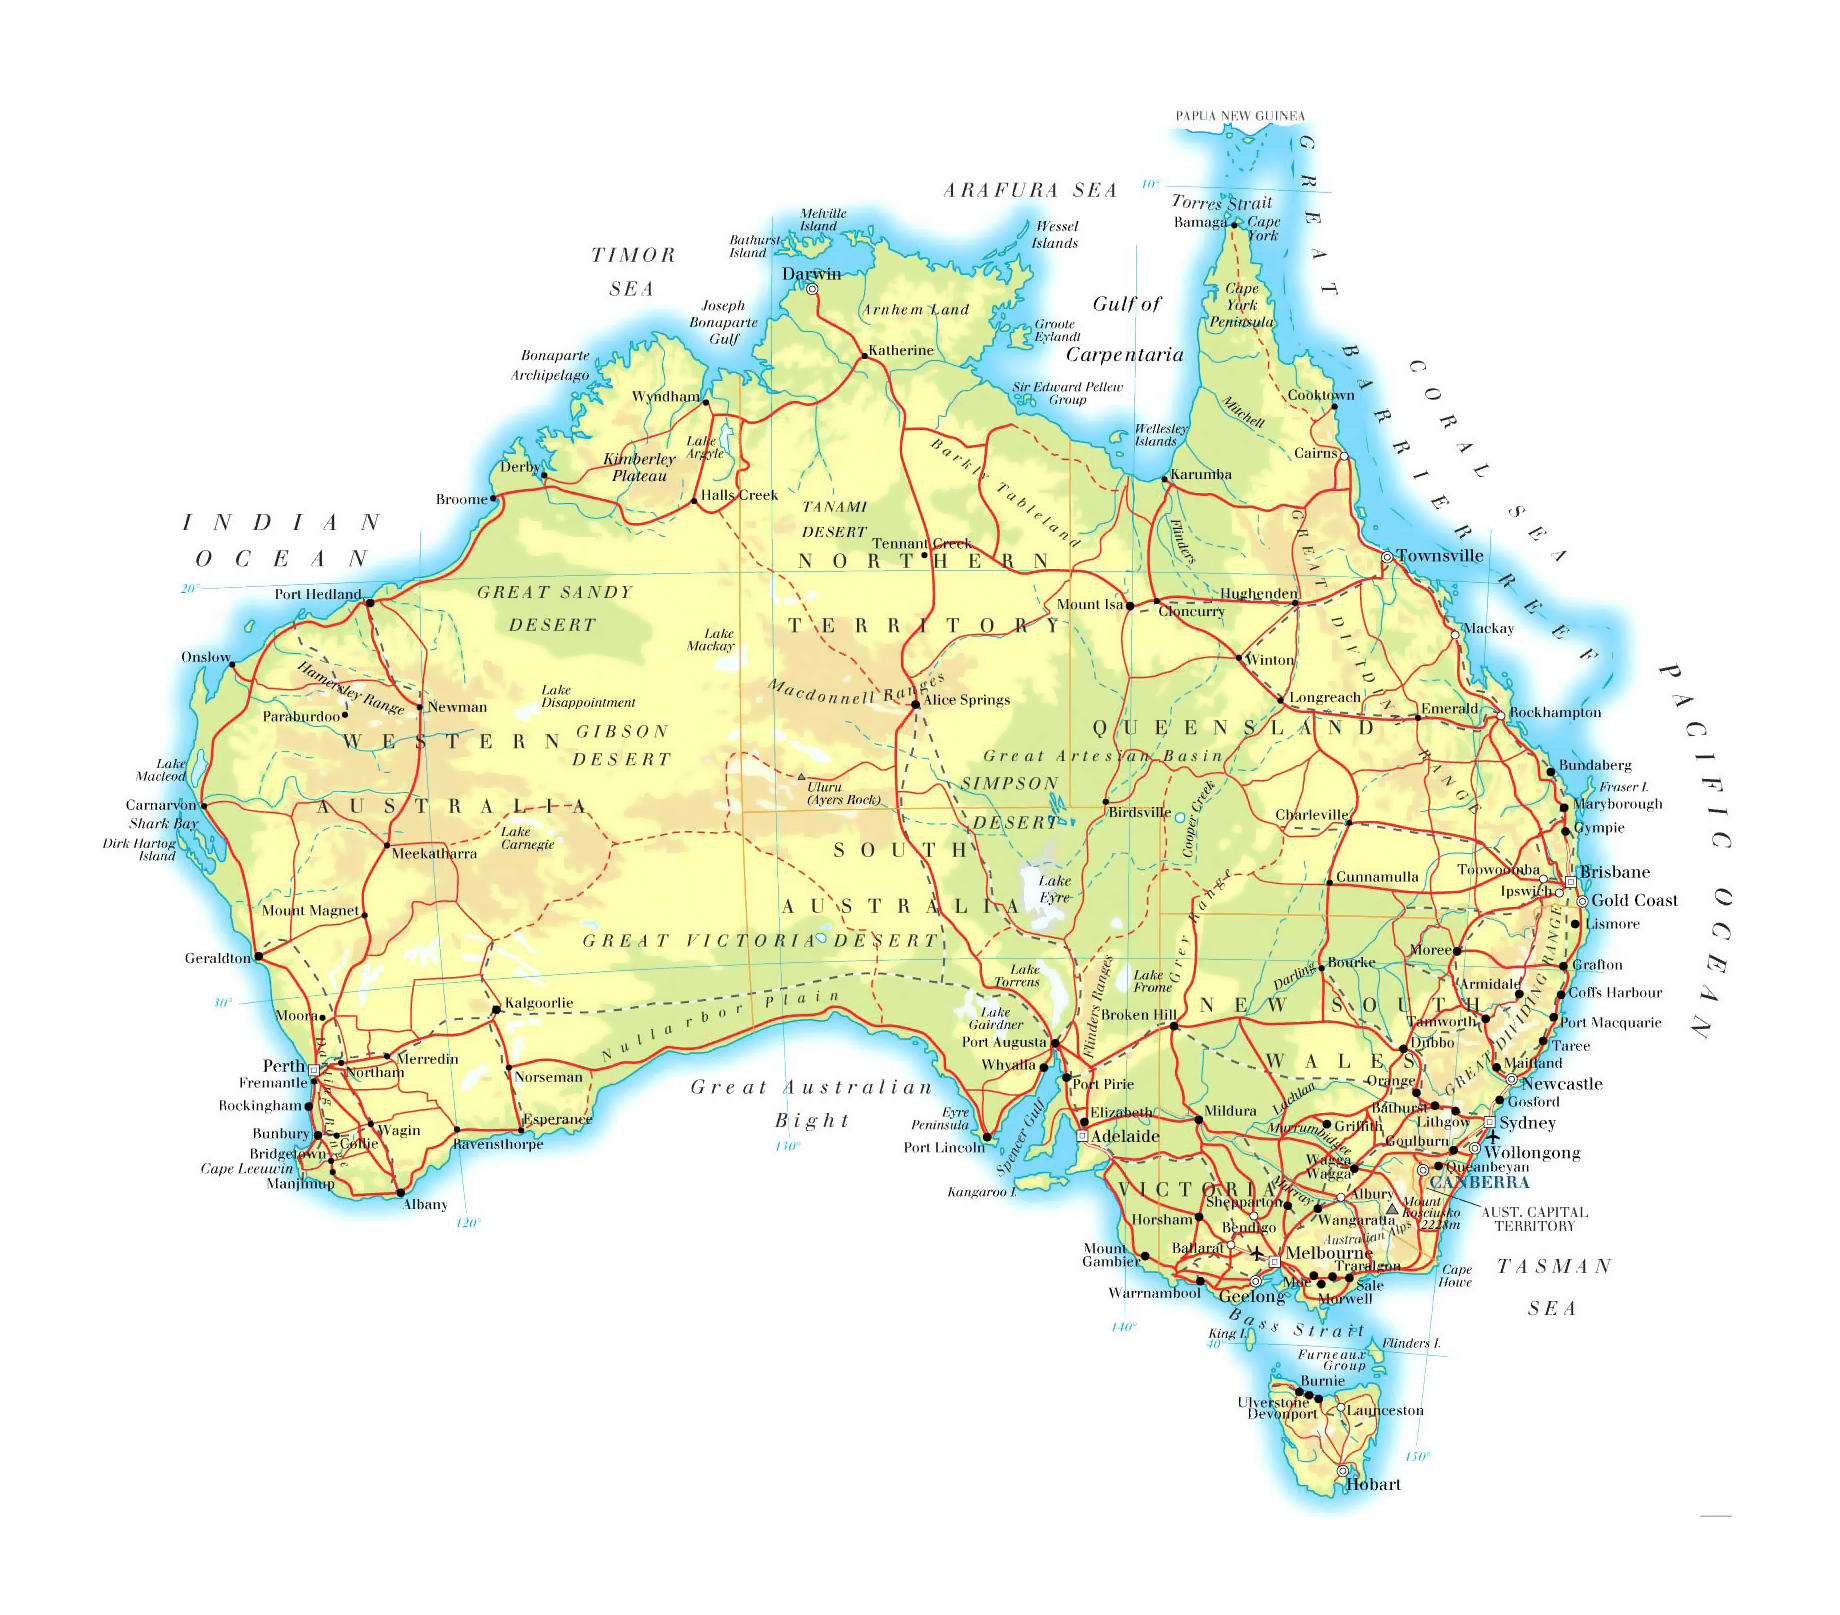 Ark Elevation Map.Large Elevation Map Of Australia With Roads Railroads Cities And